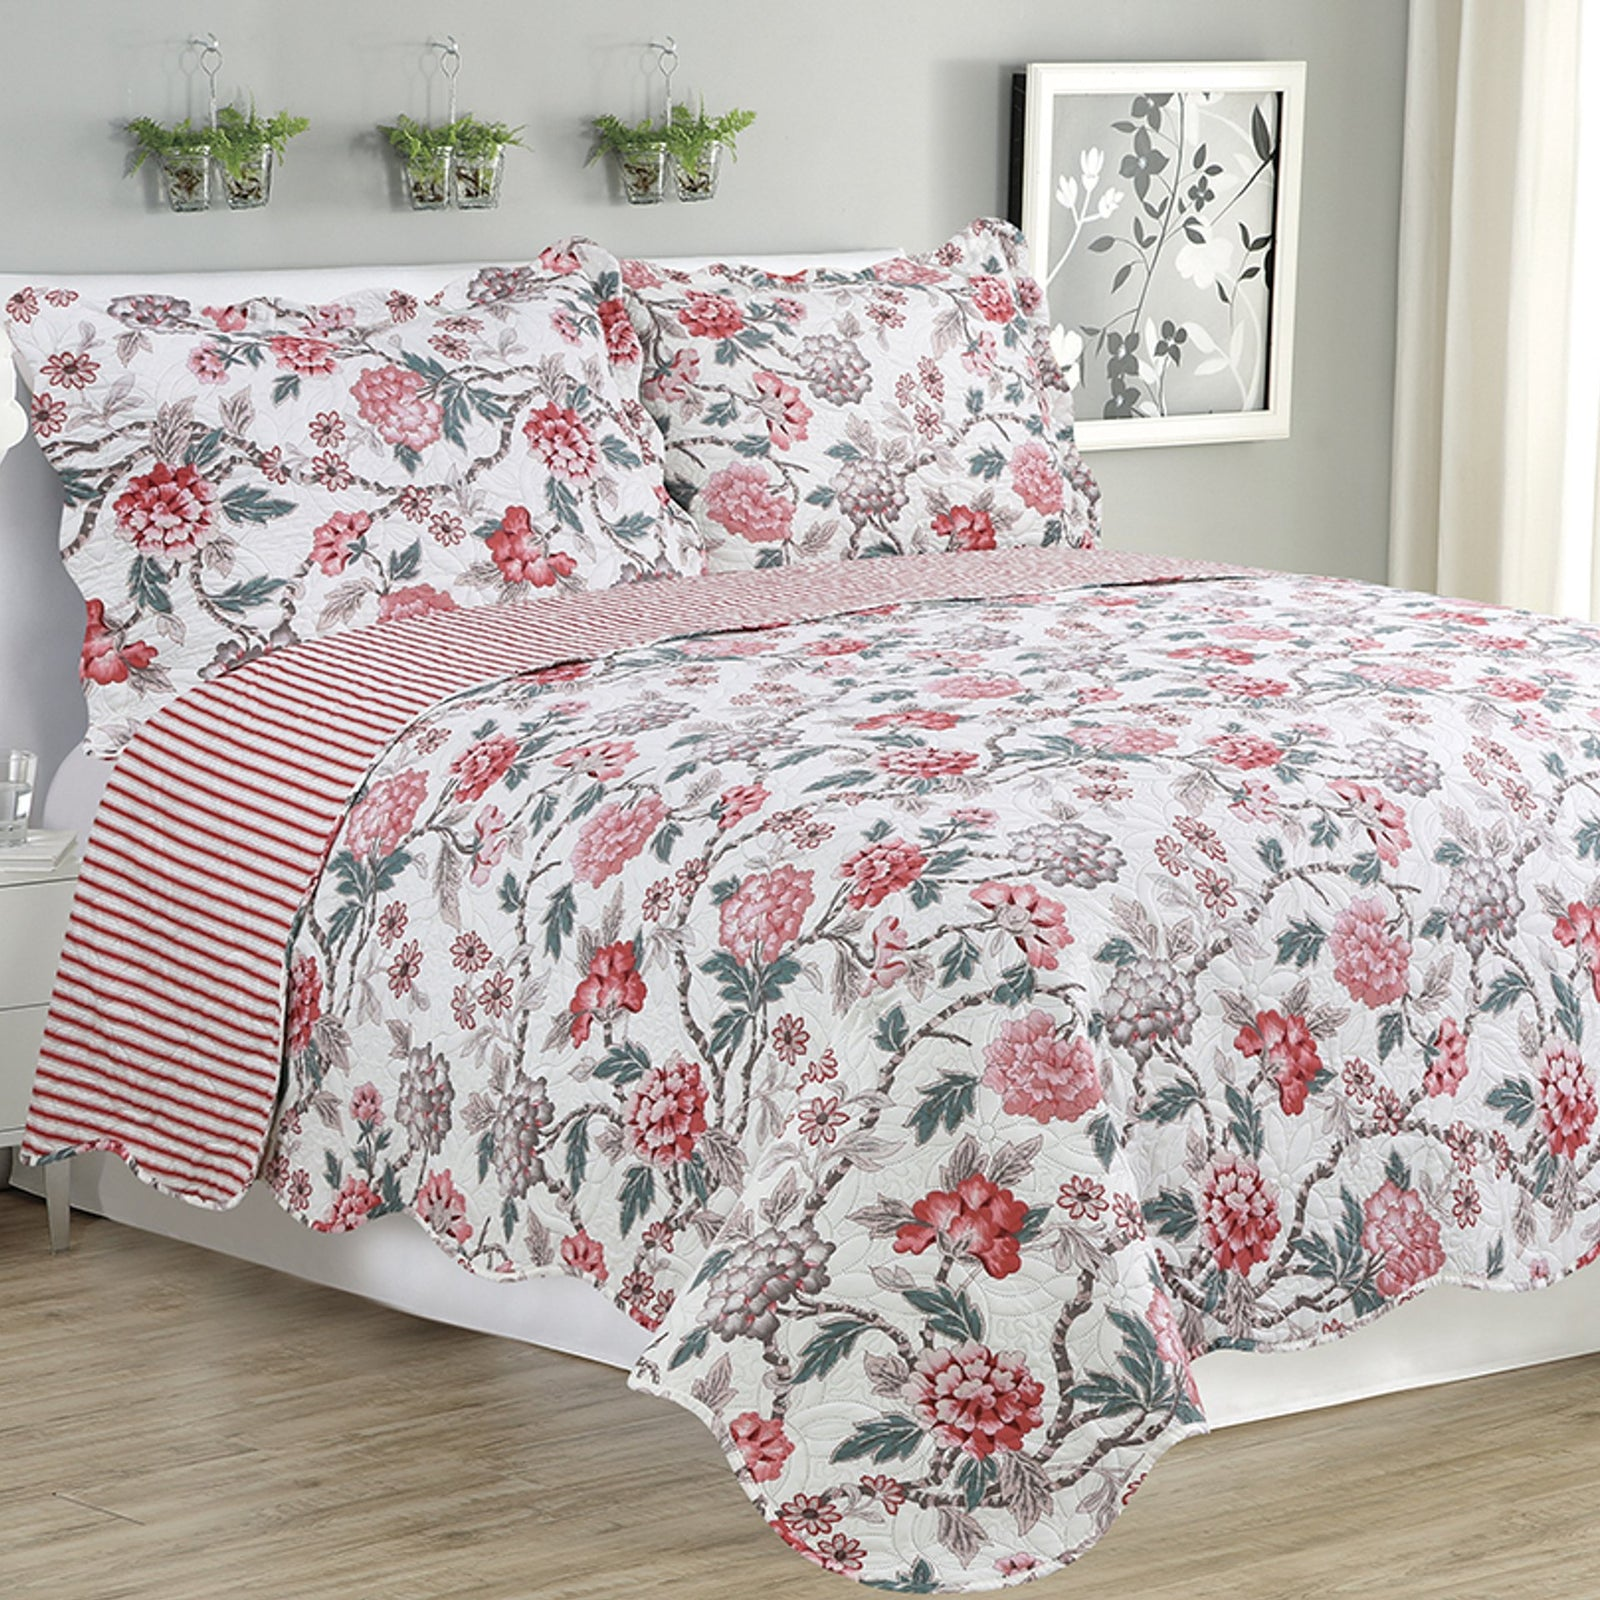 Melissa - 3 Piece Quilt Set - Multi Color Rose